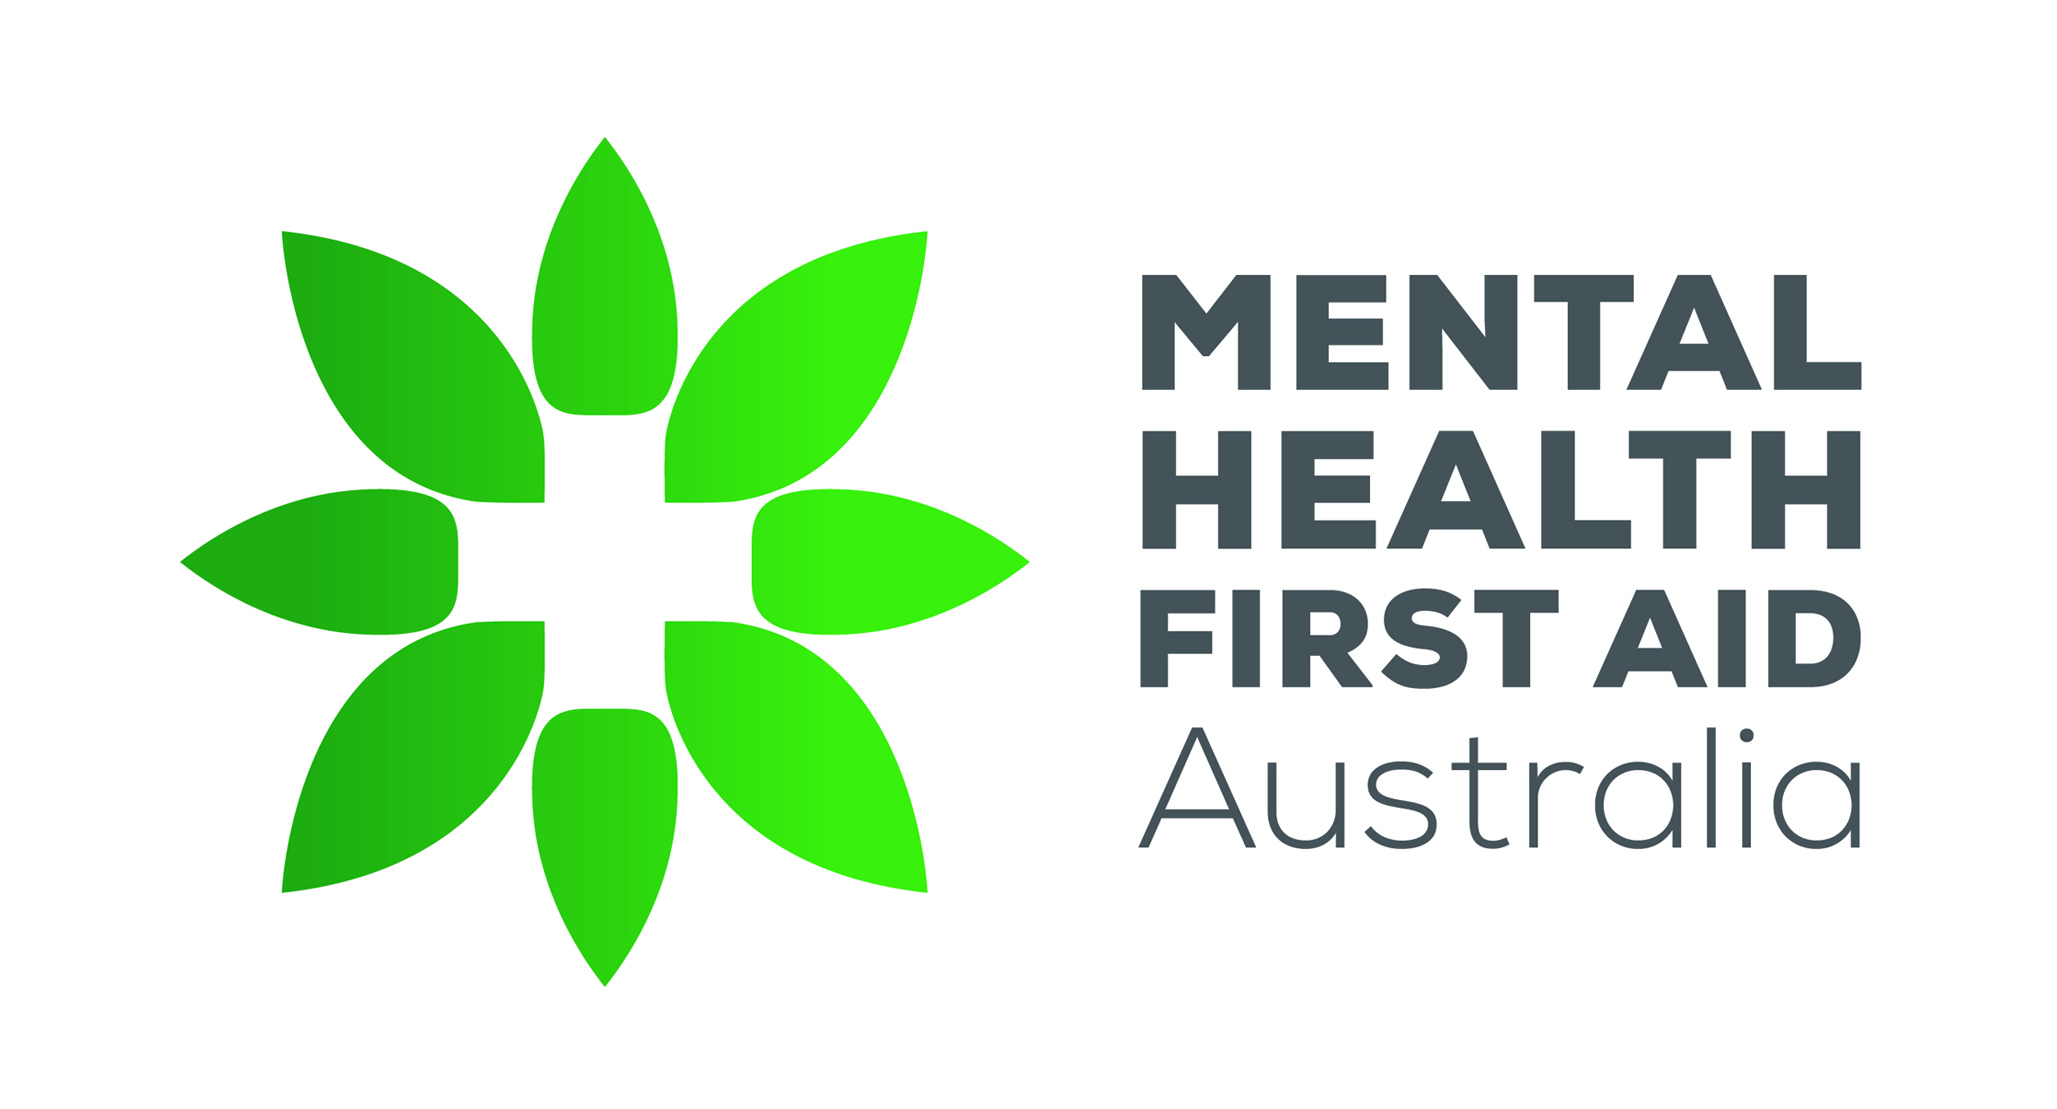 Mental Health First Aid Australia FAQs Help Center home page